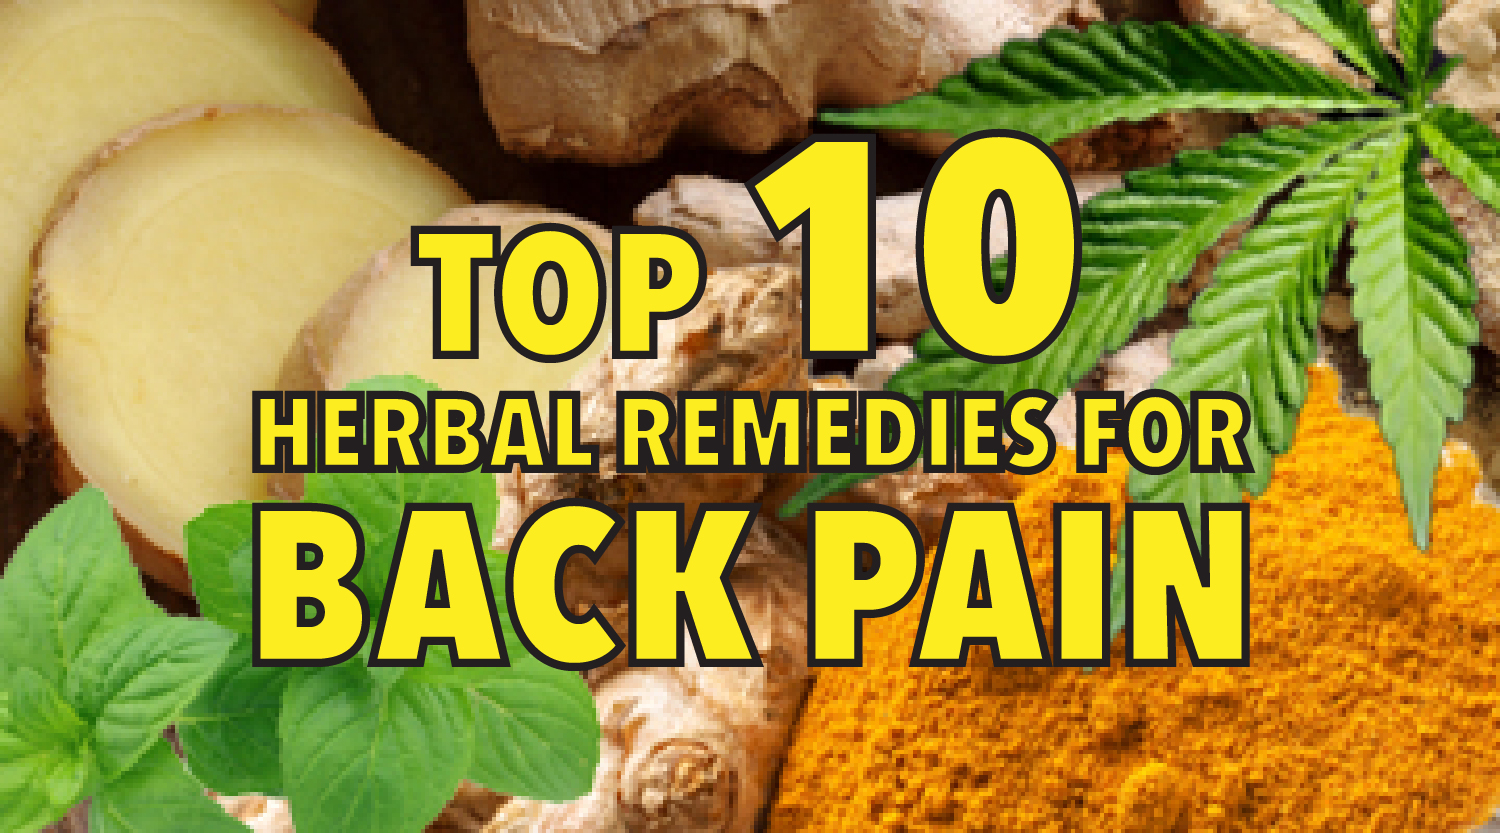 Top 10 herbal remedies for back pain